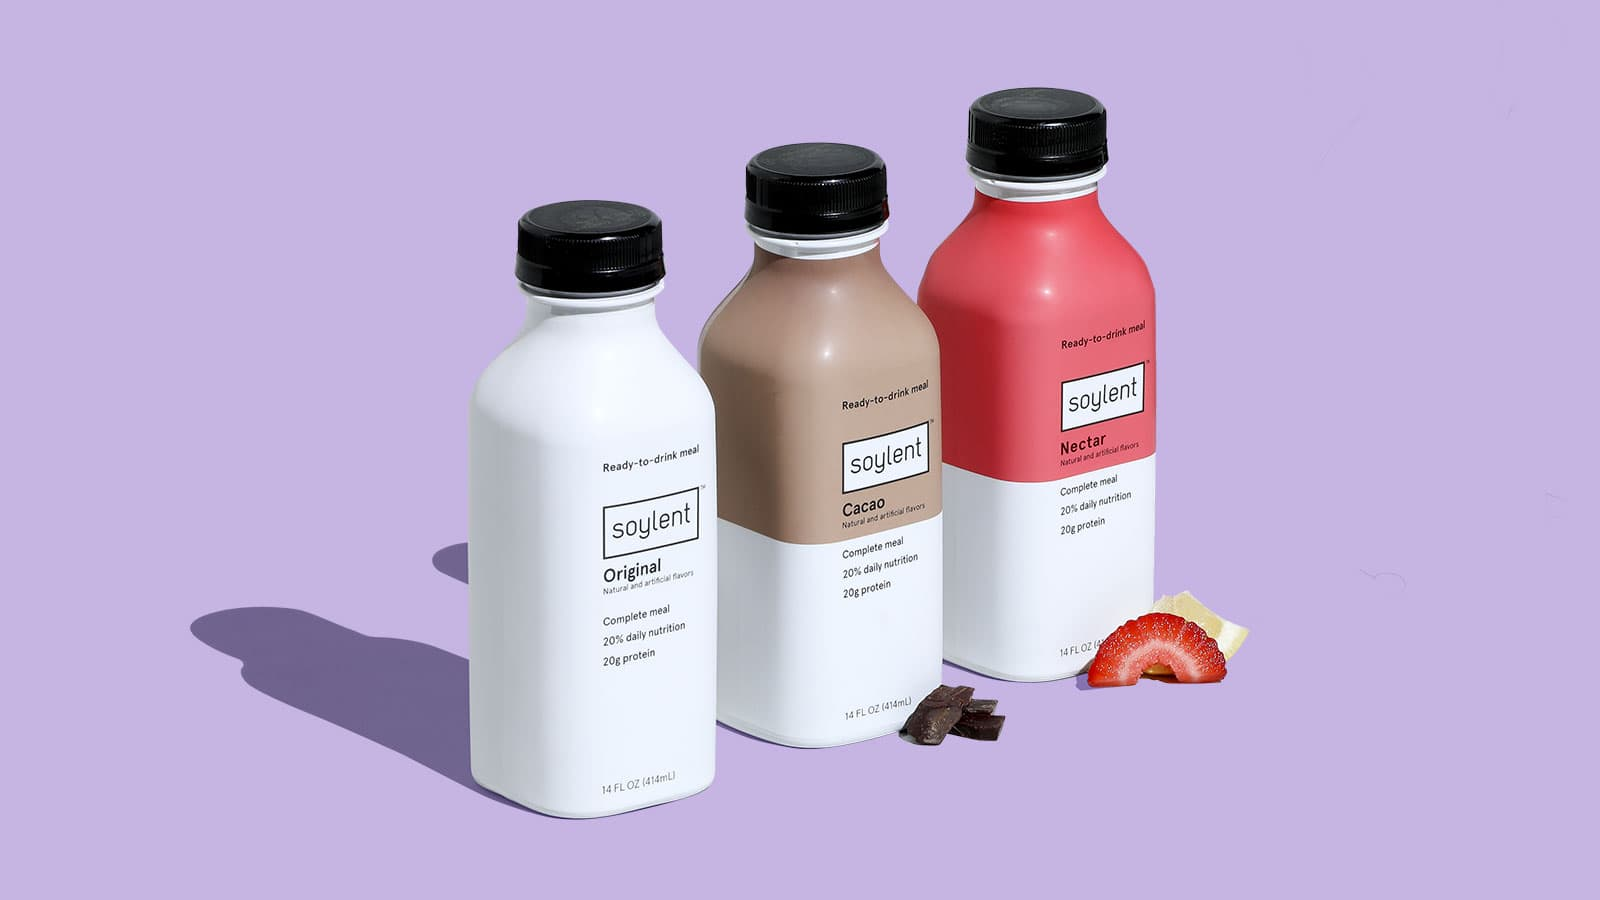 Soylent Partners with goPuff